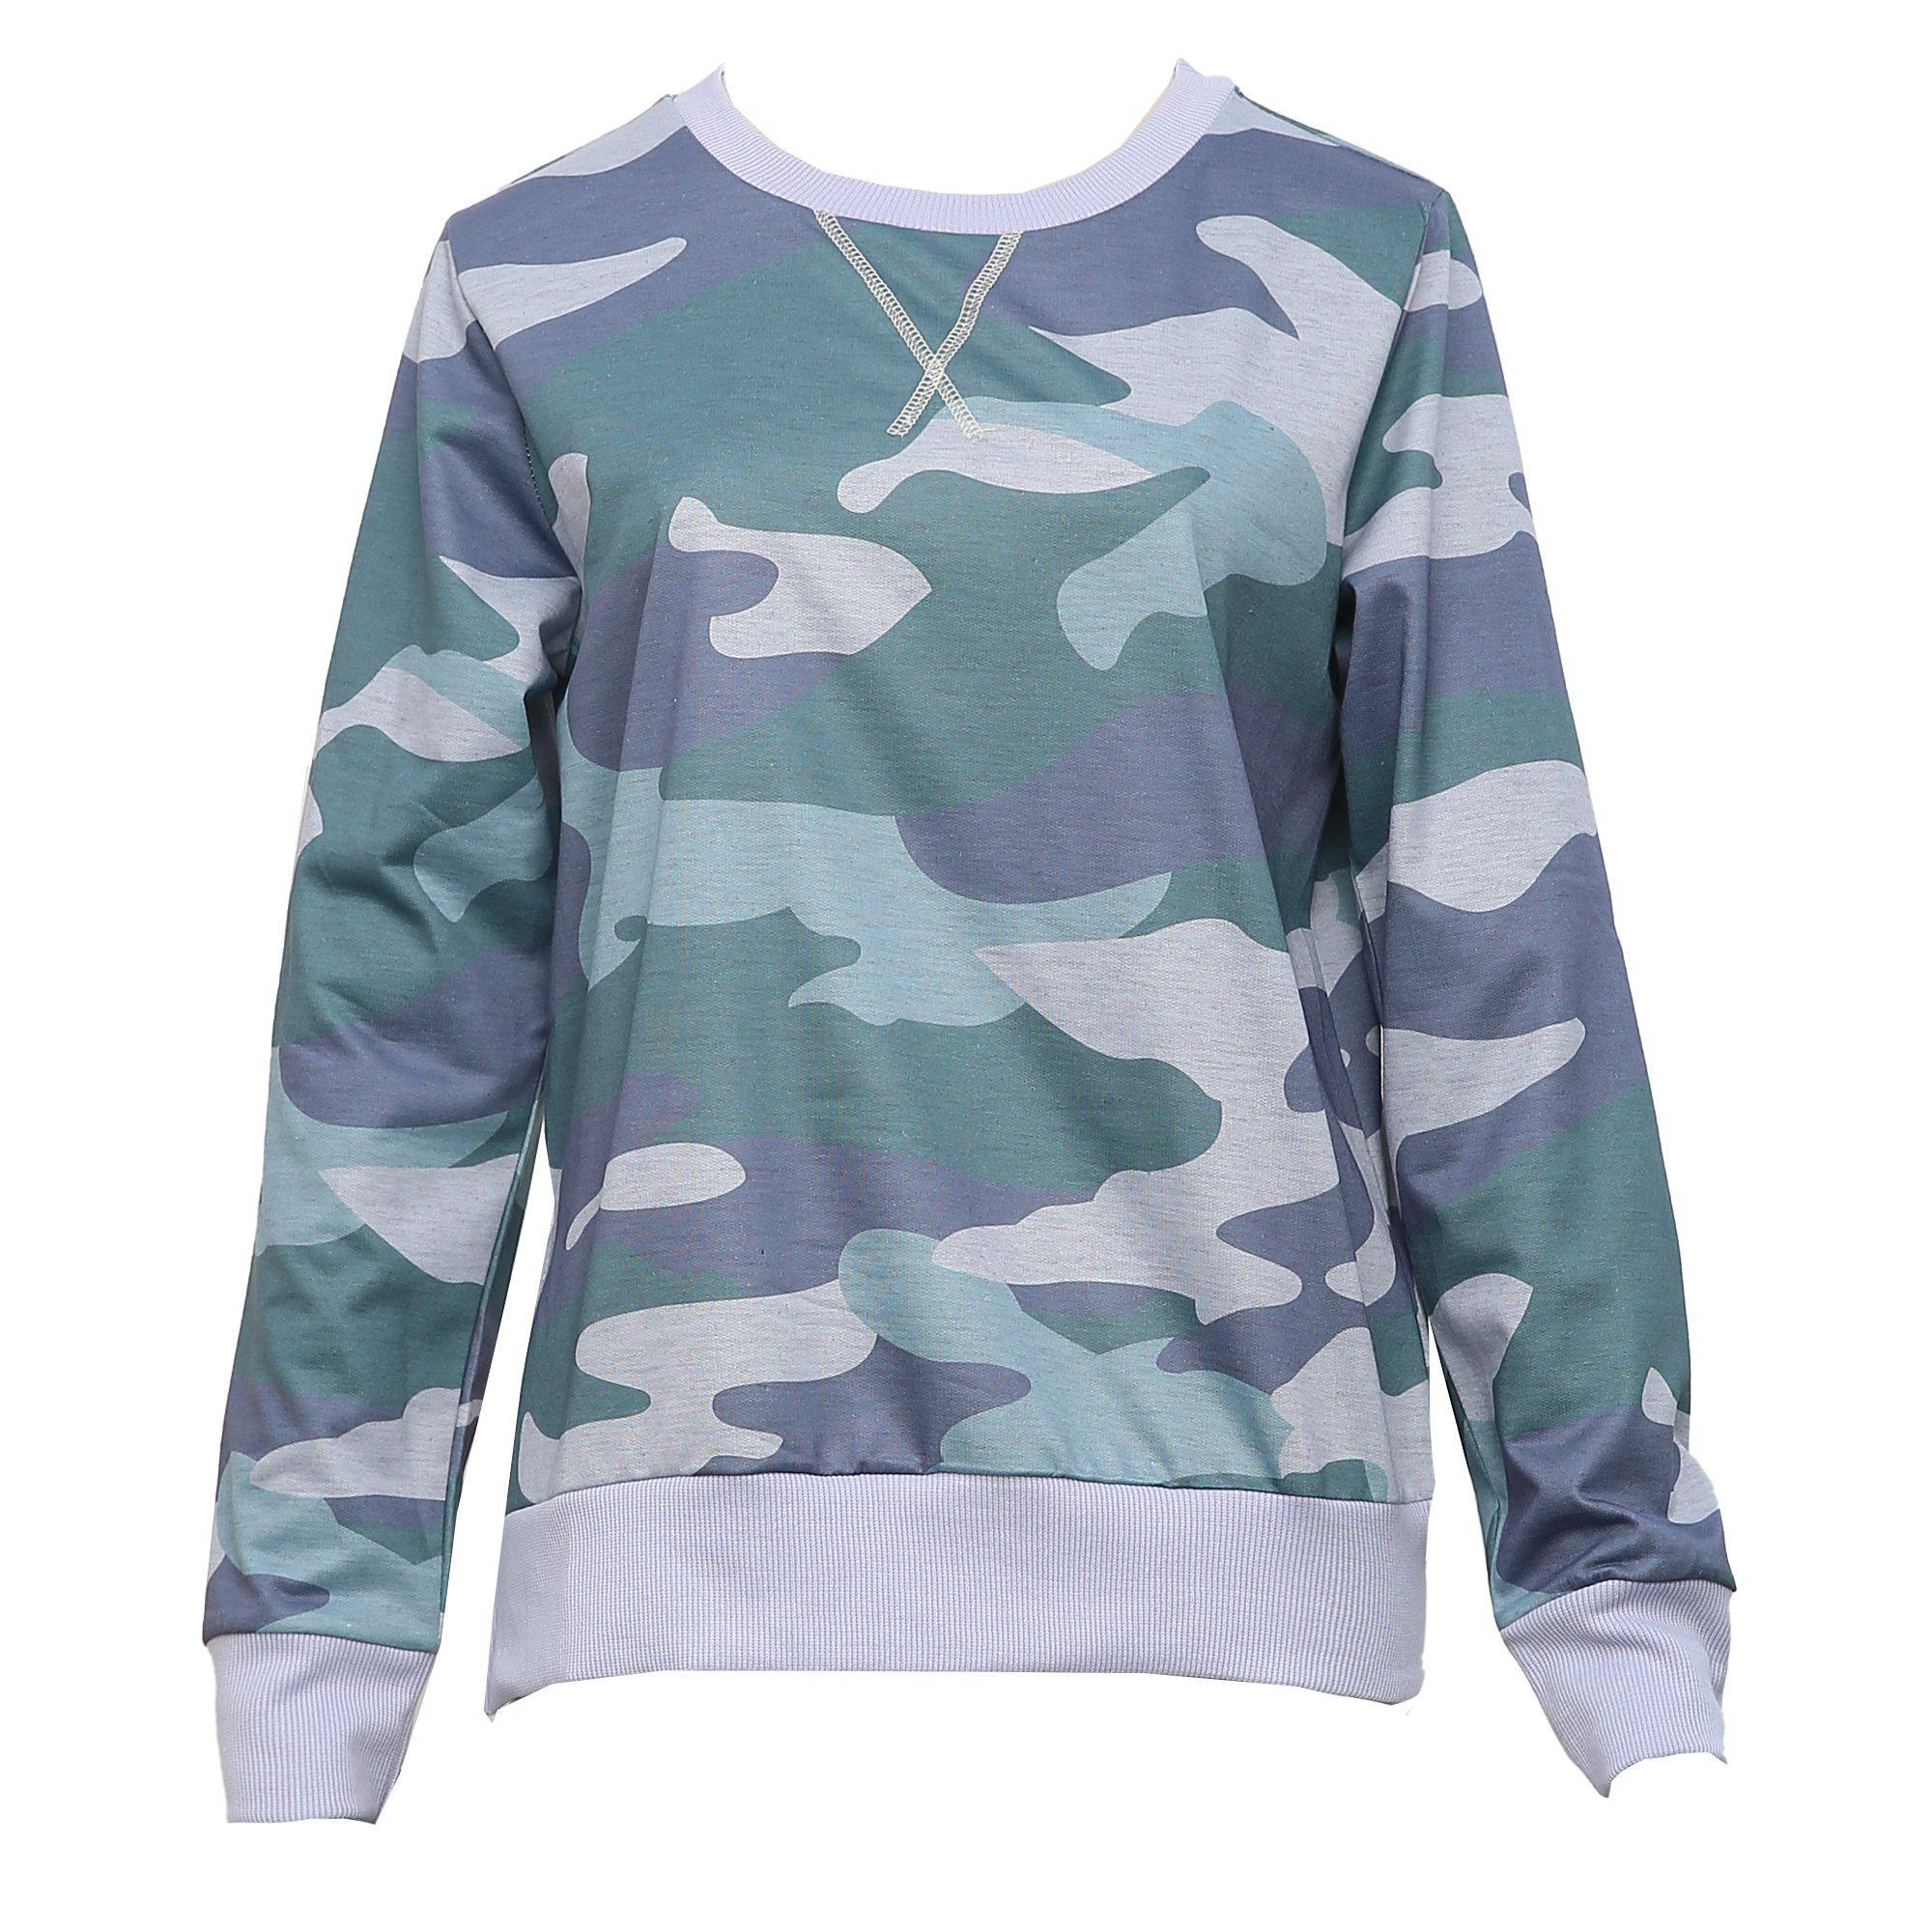 Cute on the Couch Camo Sweatshirt 4